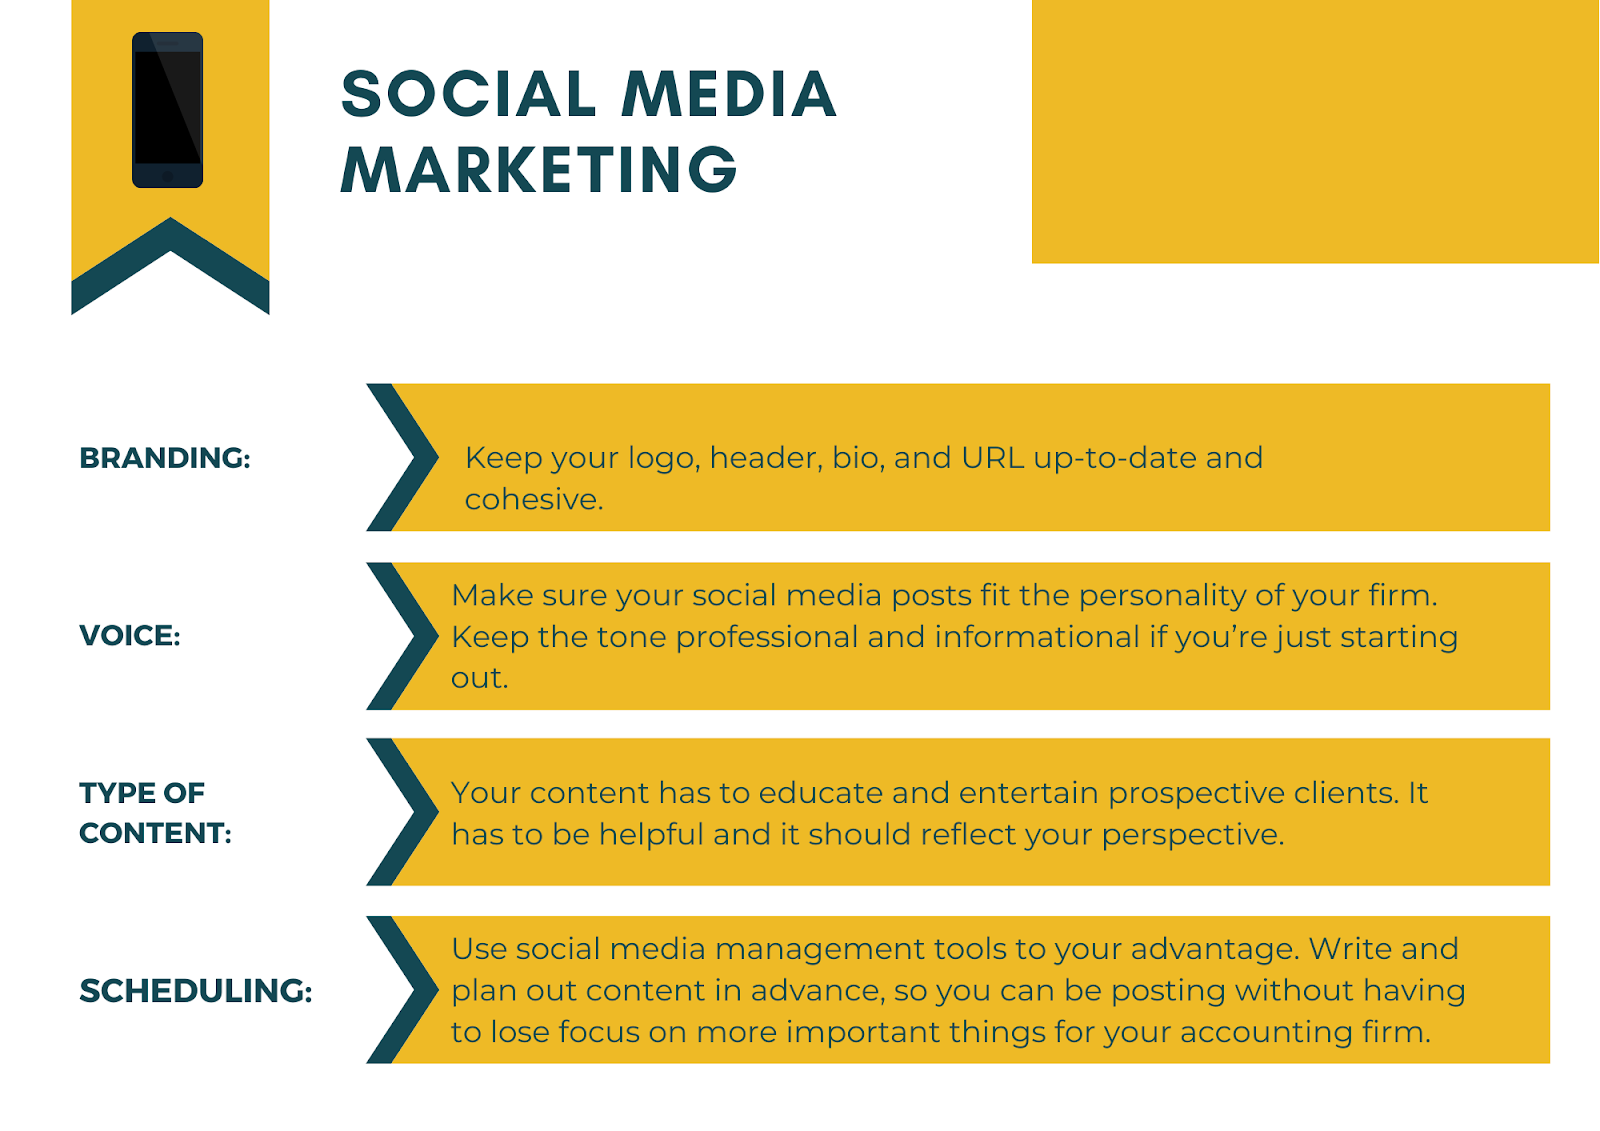 social media marketing for accountants